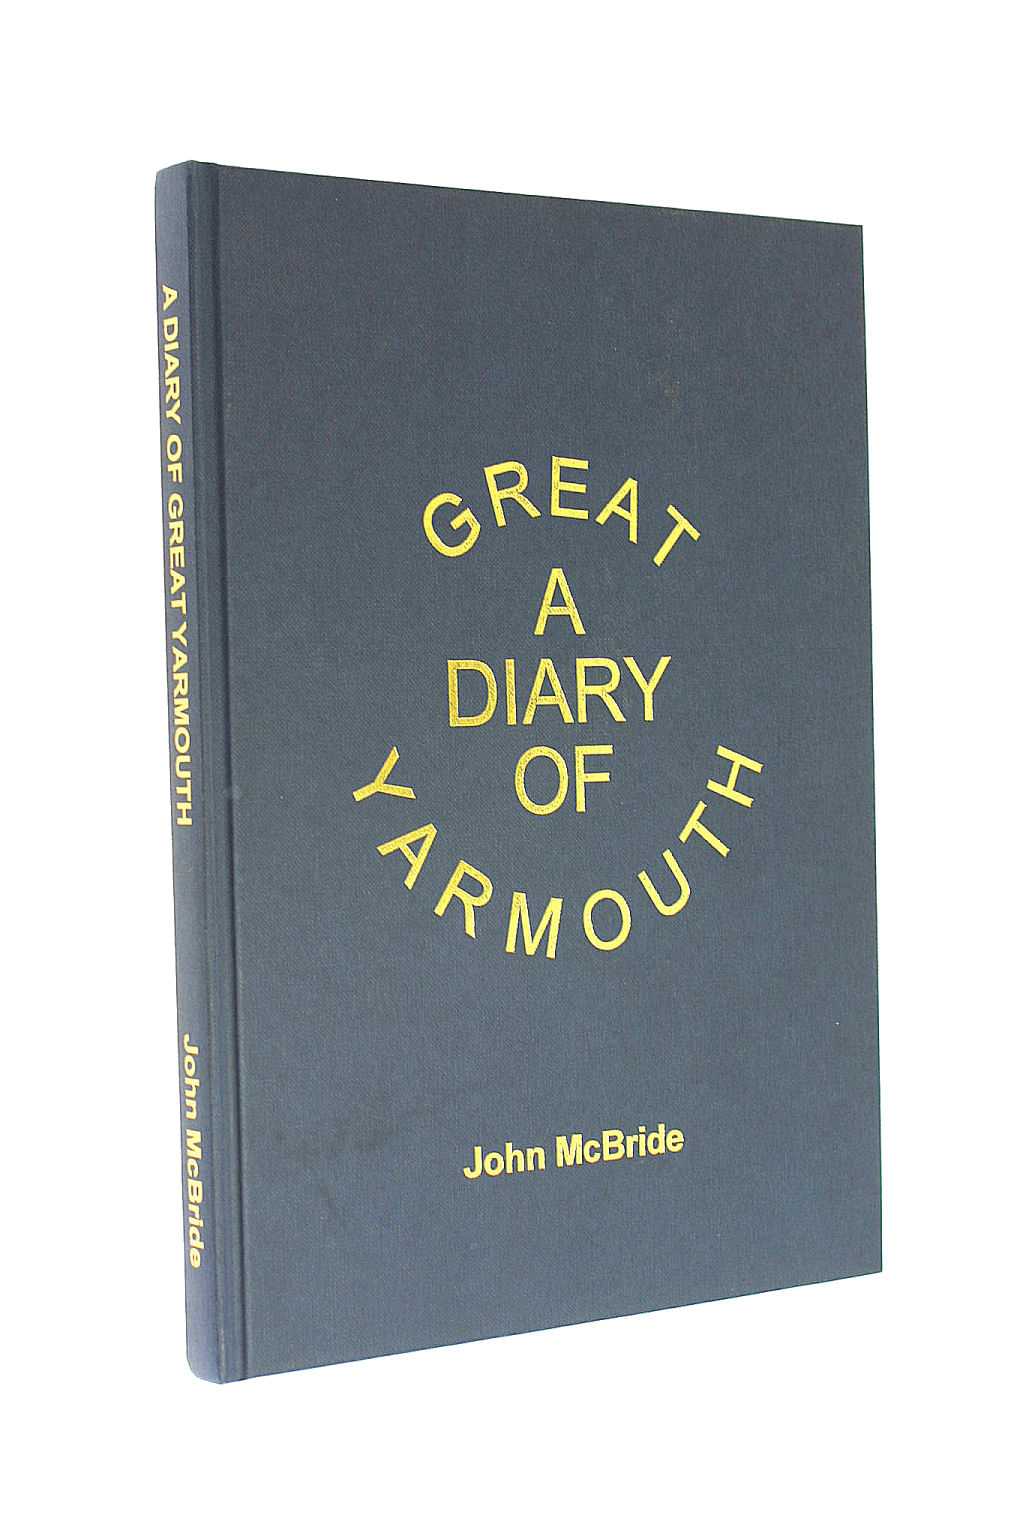 Image for Diary of Great Yarmouth